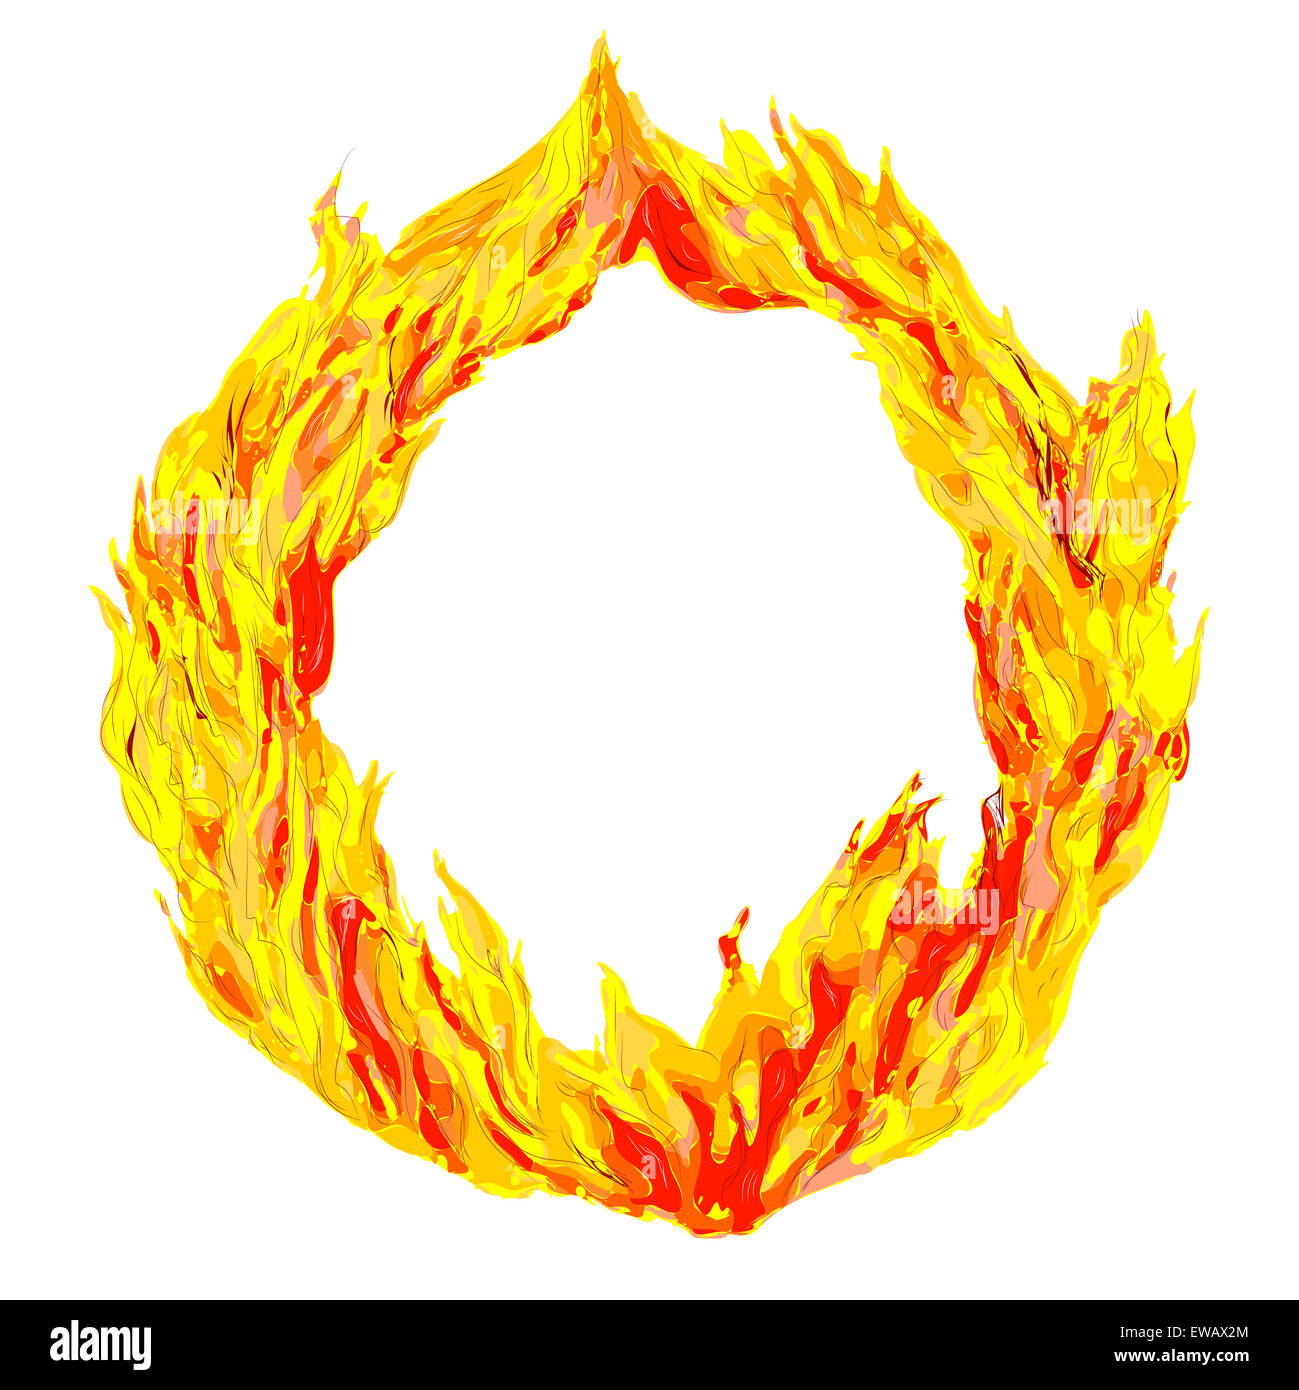 fire circle isolated on a white background - Stock Image